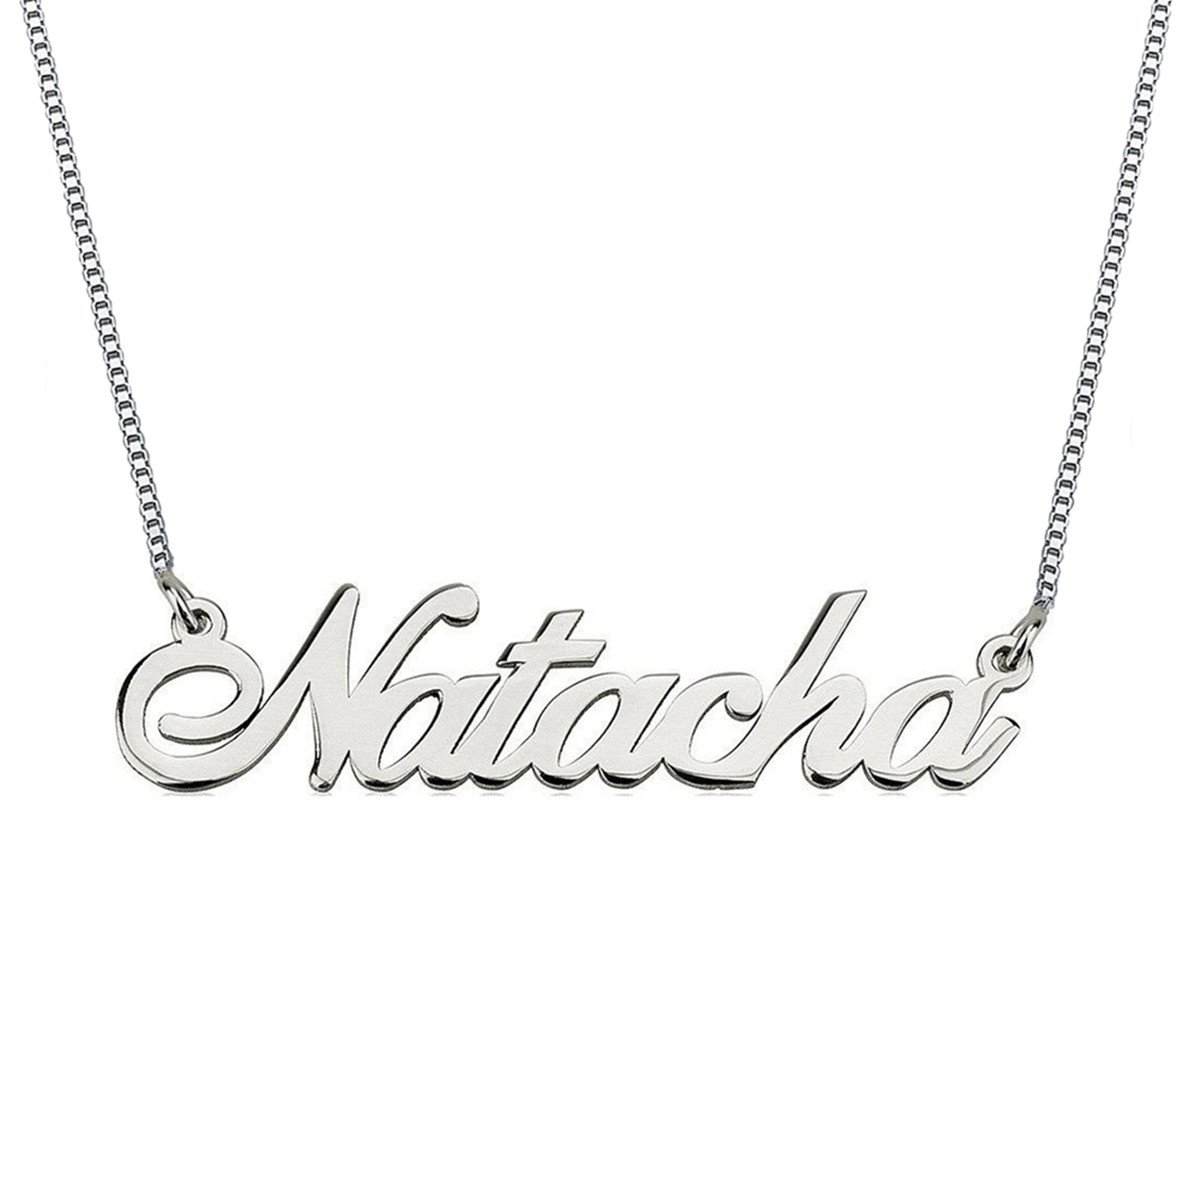 HACOOL Personalized Necklace, Custom Name Necklaces 18K White Gold Pendant for her Thanksgiving Day Birthday Gift by HACOOL